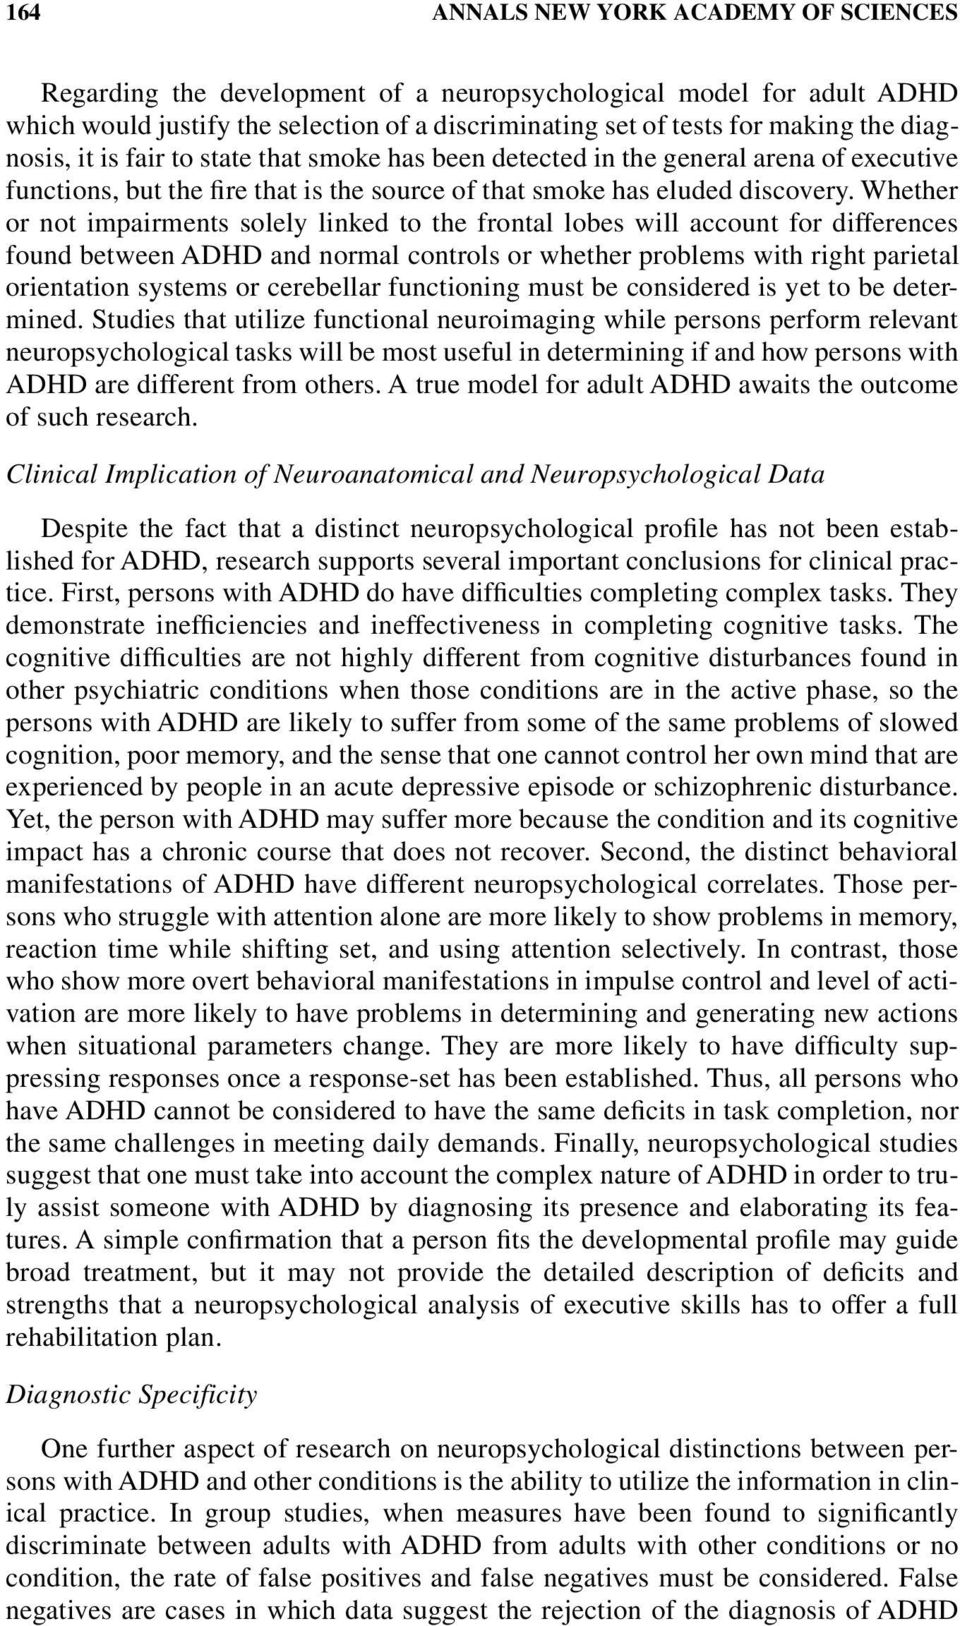 Whether or not impairments solely linked to the frontal lobes will account for differences found between ADHD and normal controls or whether problems with right parietal orientation systems or